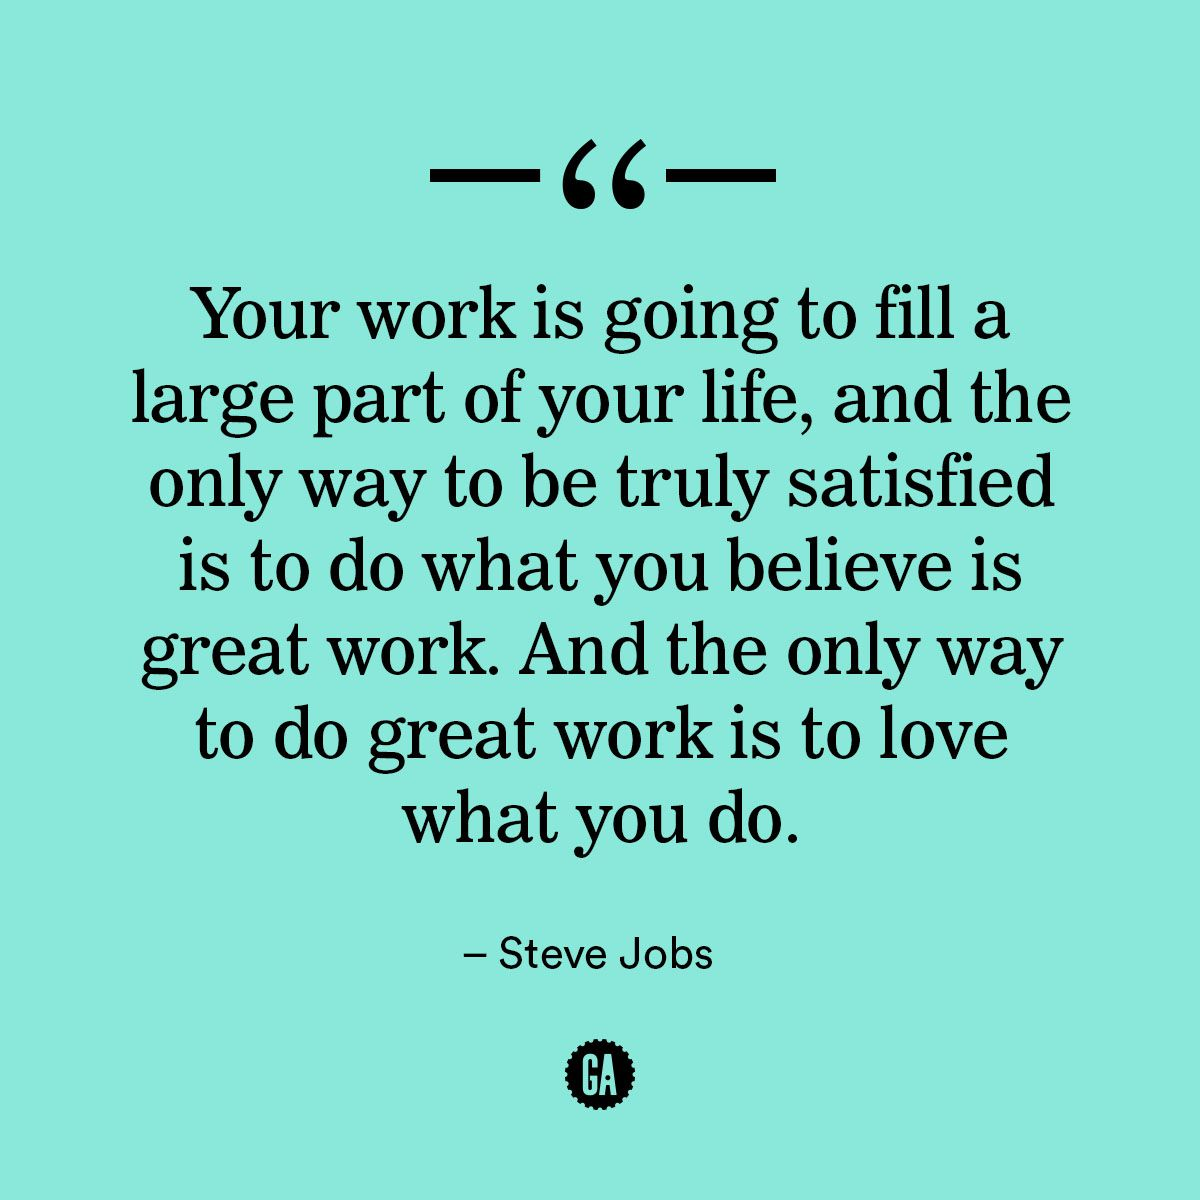 Love what you do. Do great work. #MondayMotivation